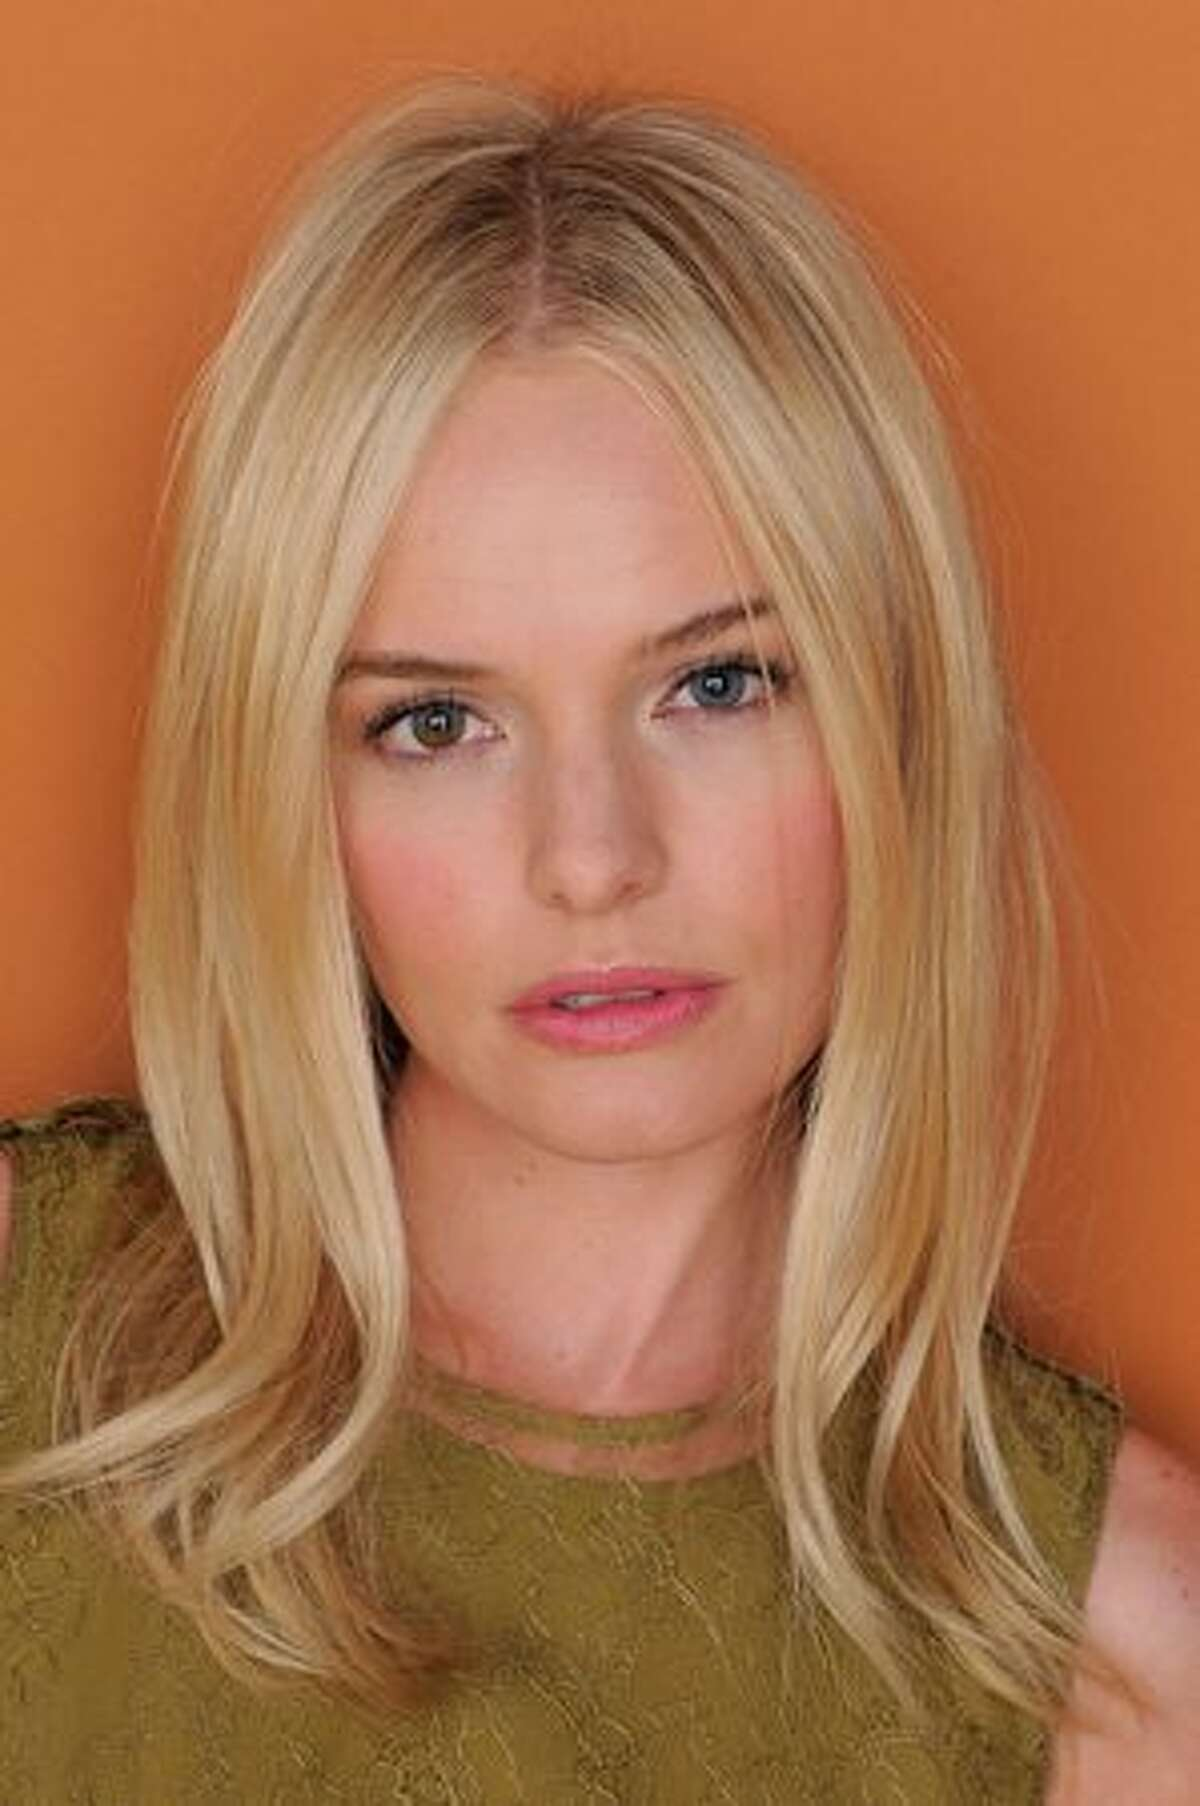 Actress Kate Bosworth poses for a portrait during the 2011 Sundance Film Festival at The Samsung Galaxy Tab Lift in Park City, Utah.